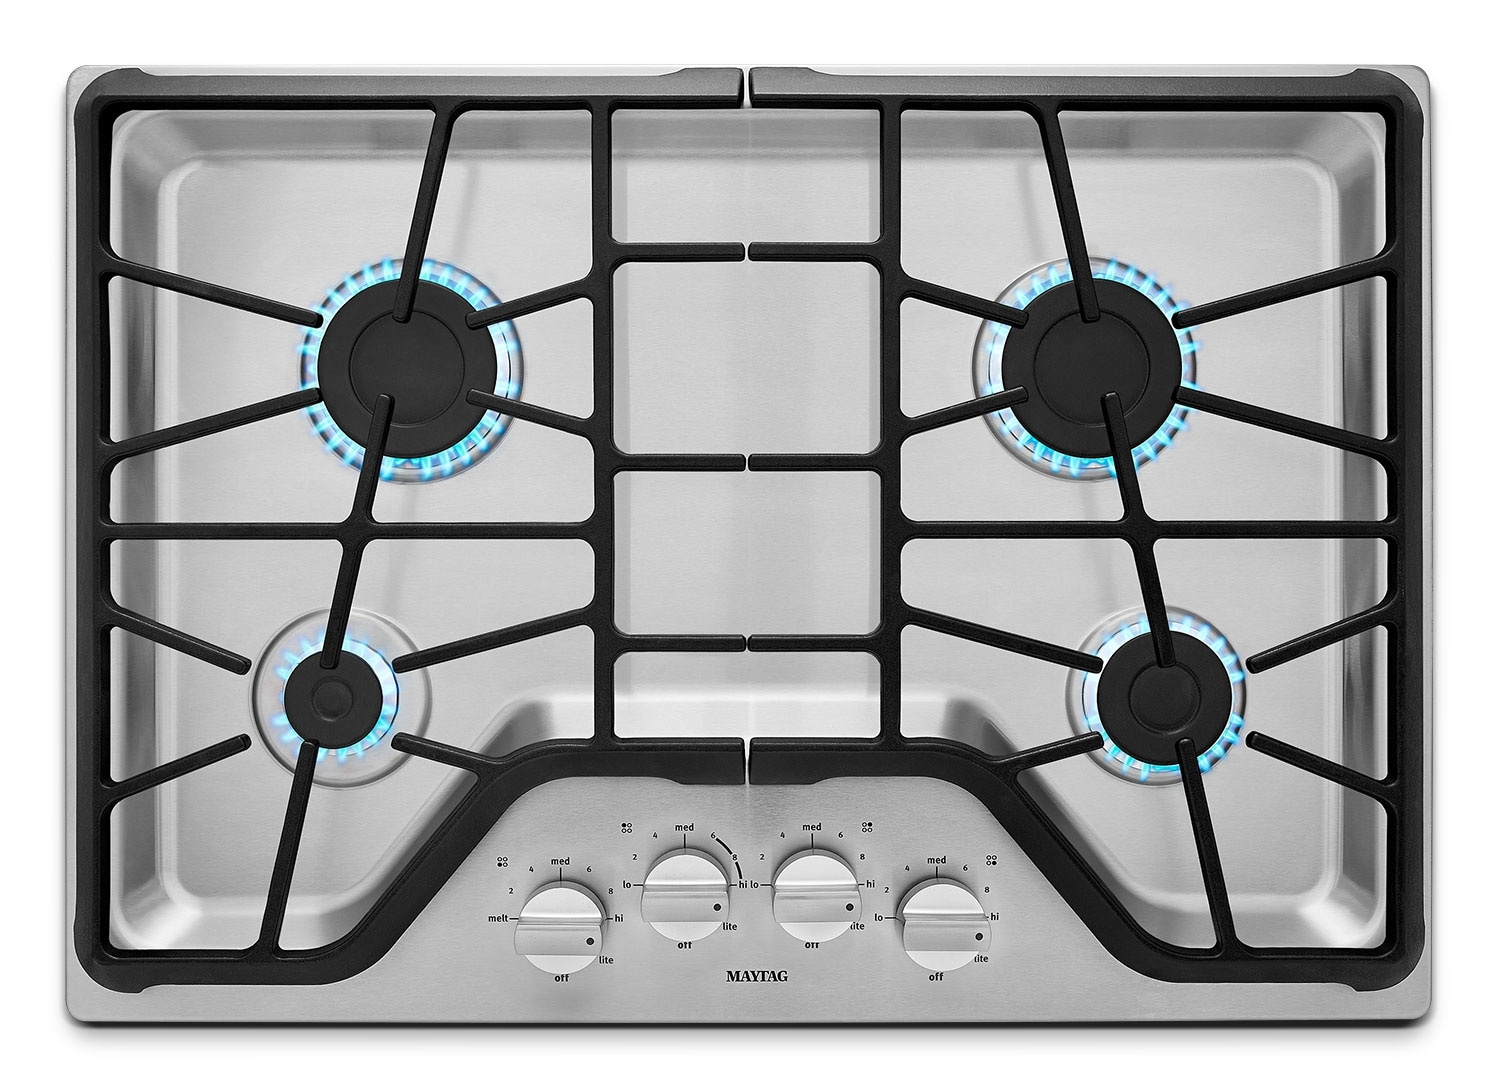 Gas Cooktop Installation Cost Maytag 30 Quot 4 Burner Gas Cooktop Stainless Steel The Brick